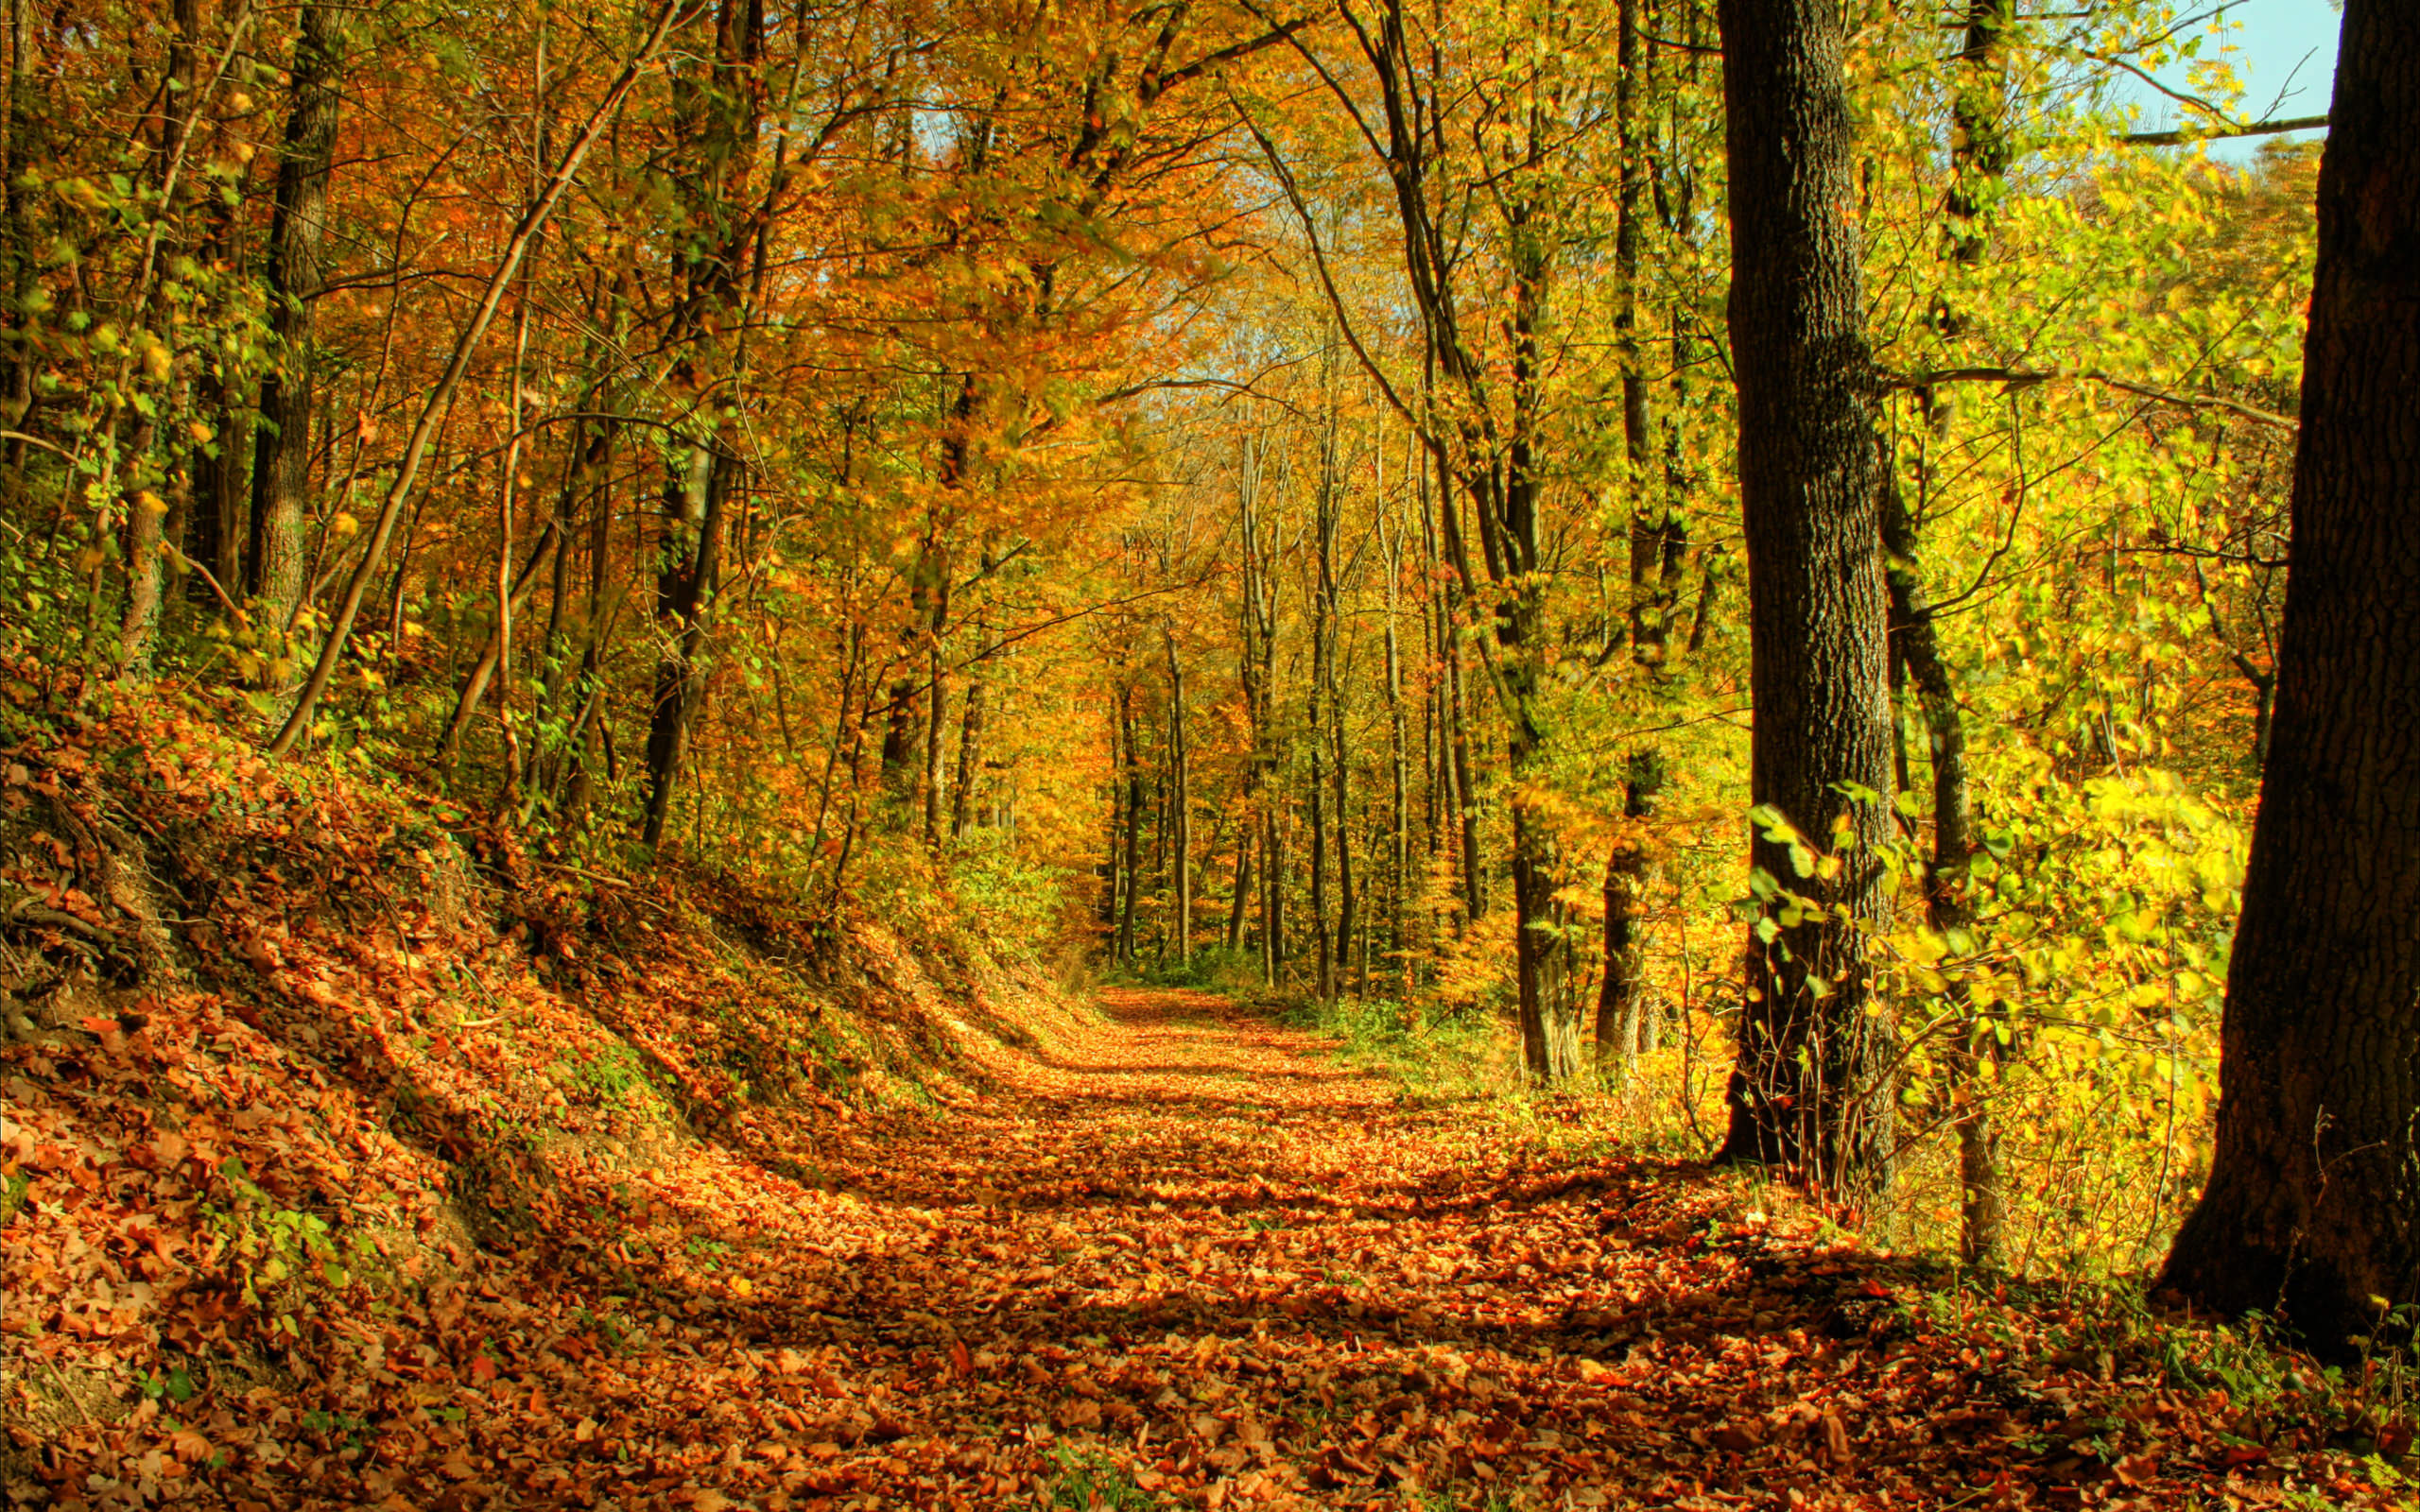 Forest path in autumn wallpaper - 1056458